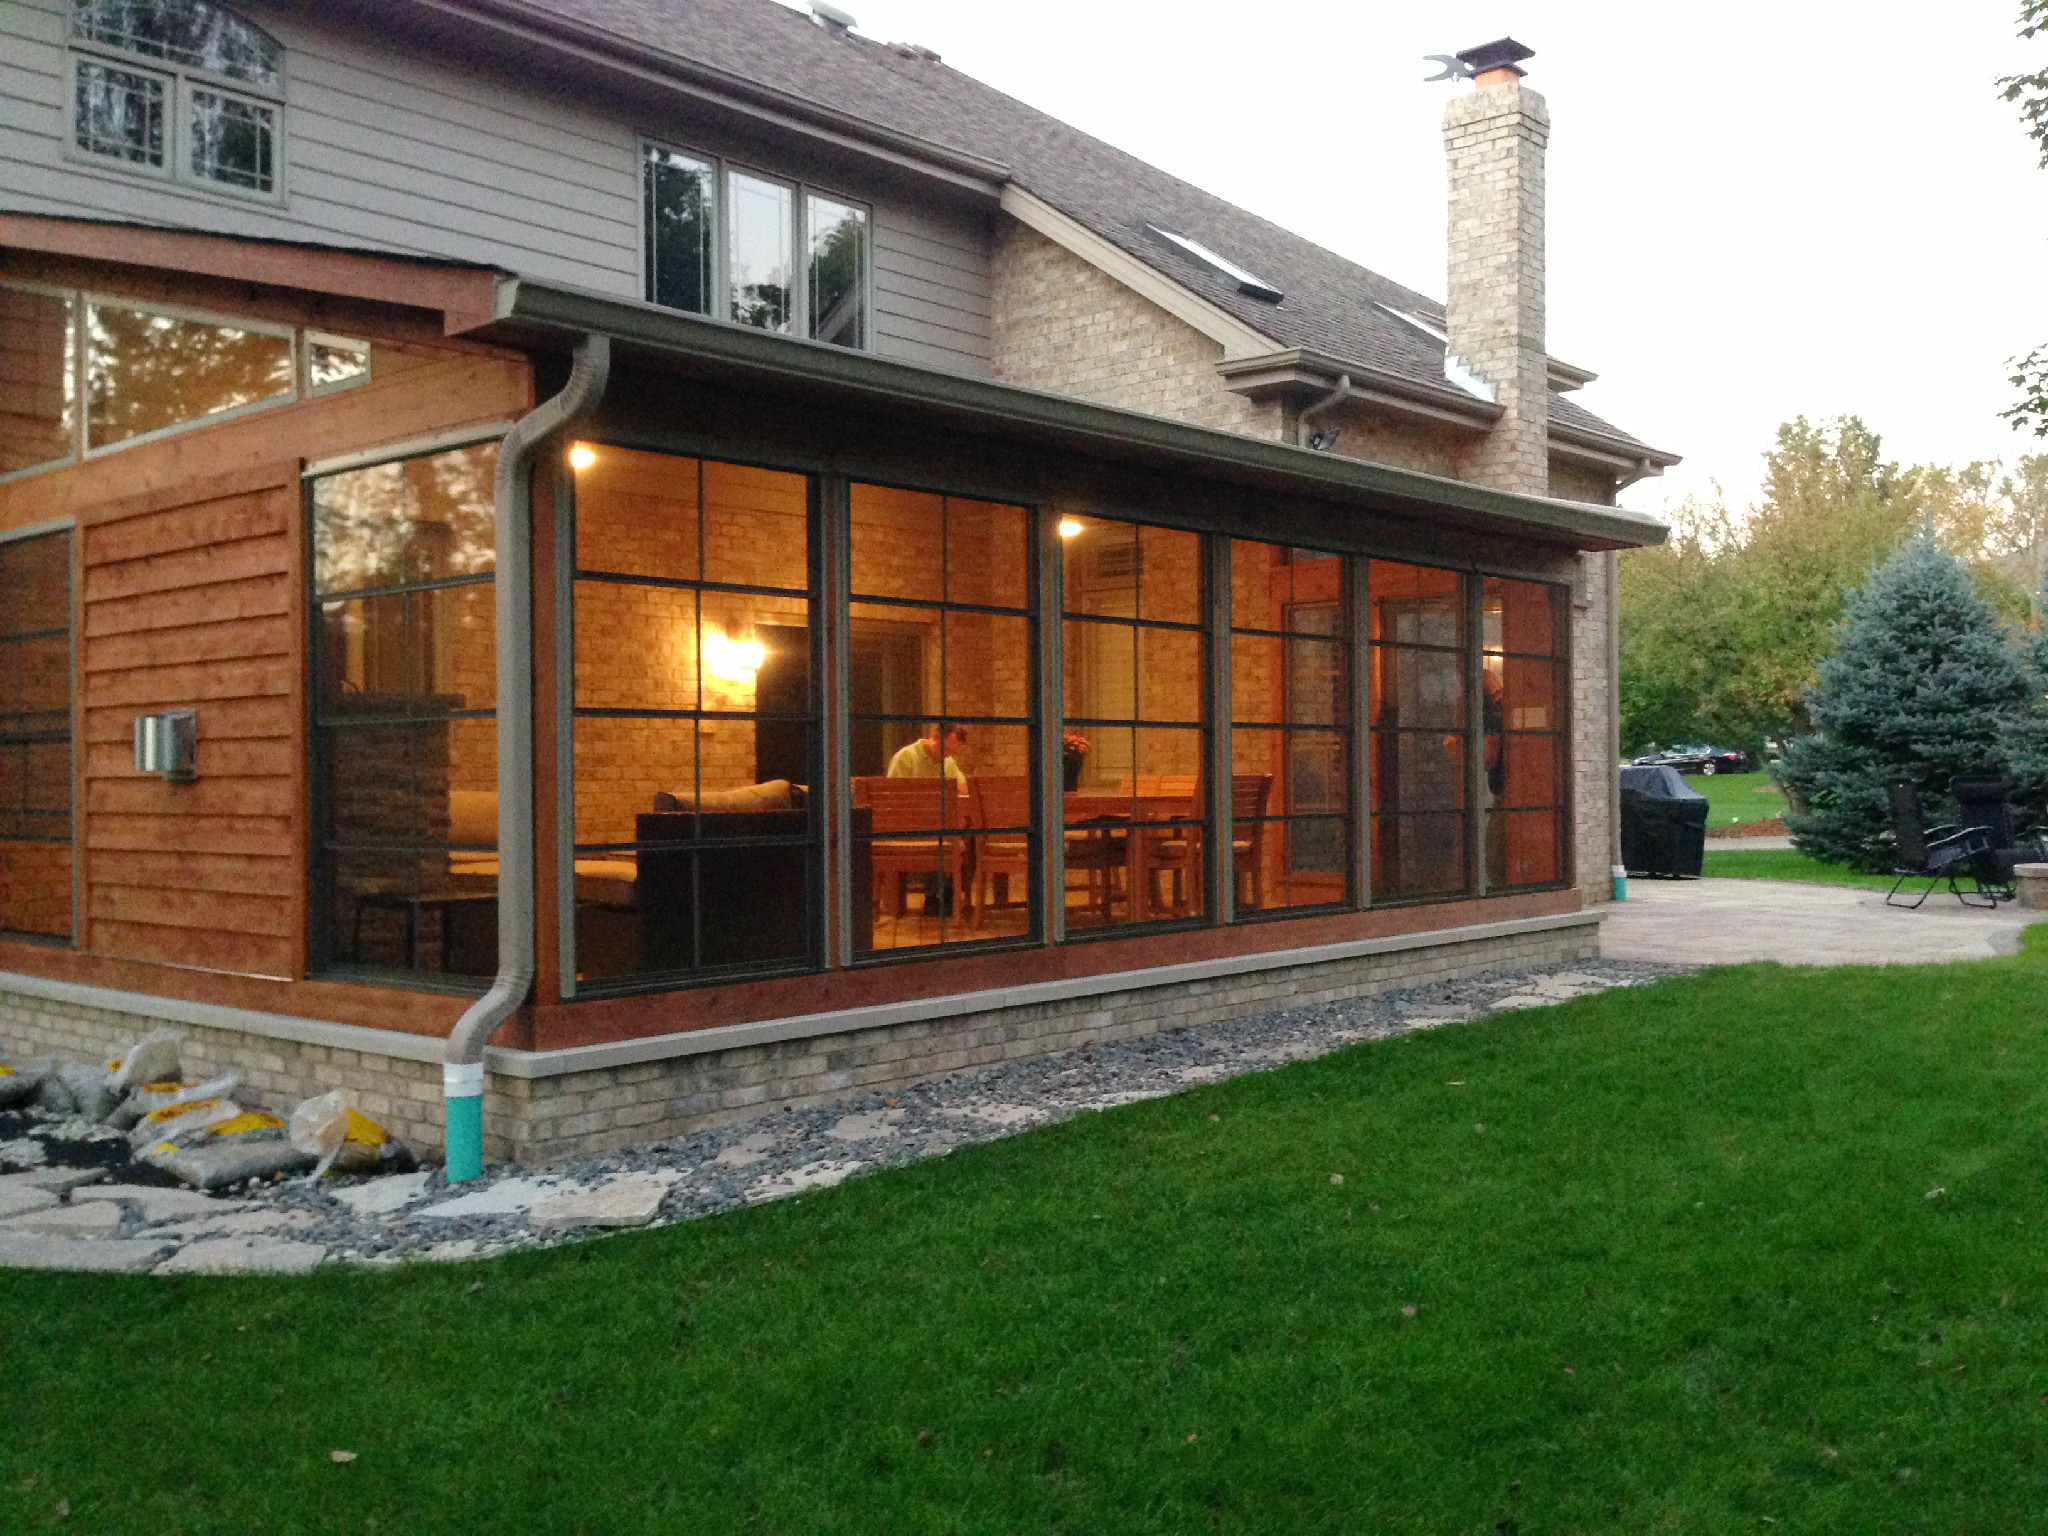 St. Louis Screened Porches: Your Backyard Is A Blank ... on Closed Patio Design id=64410